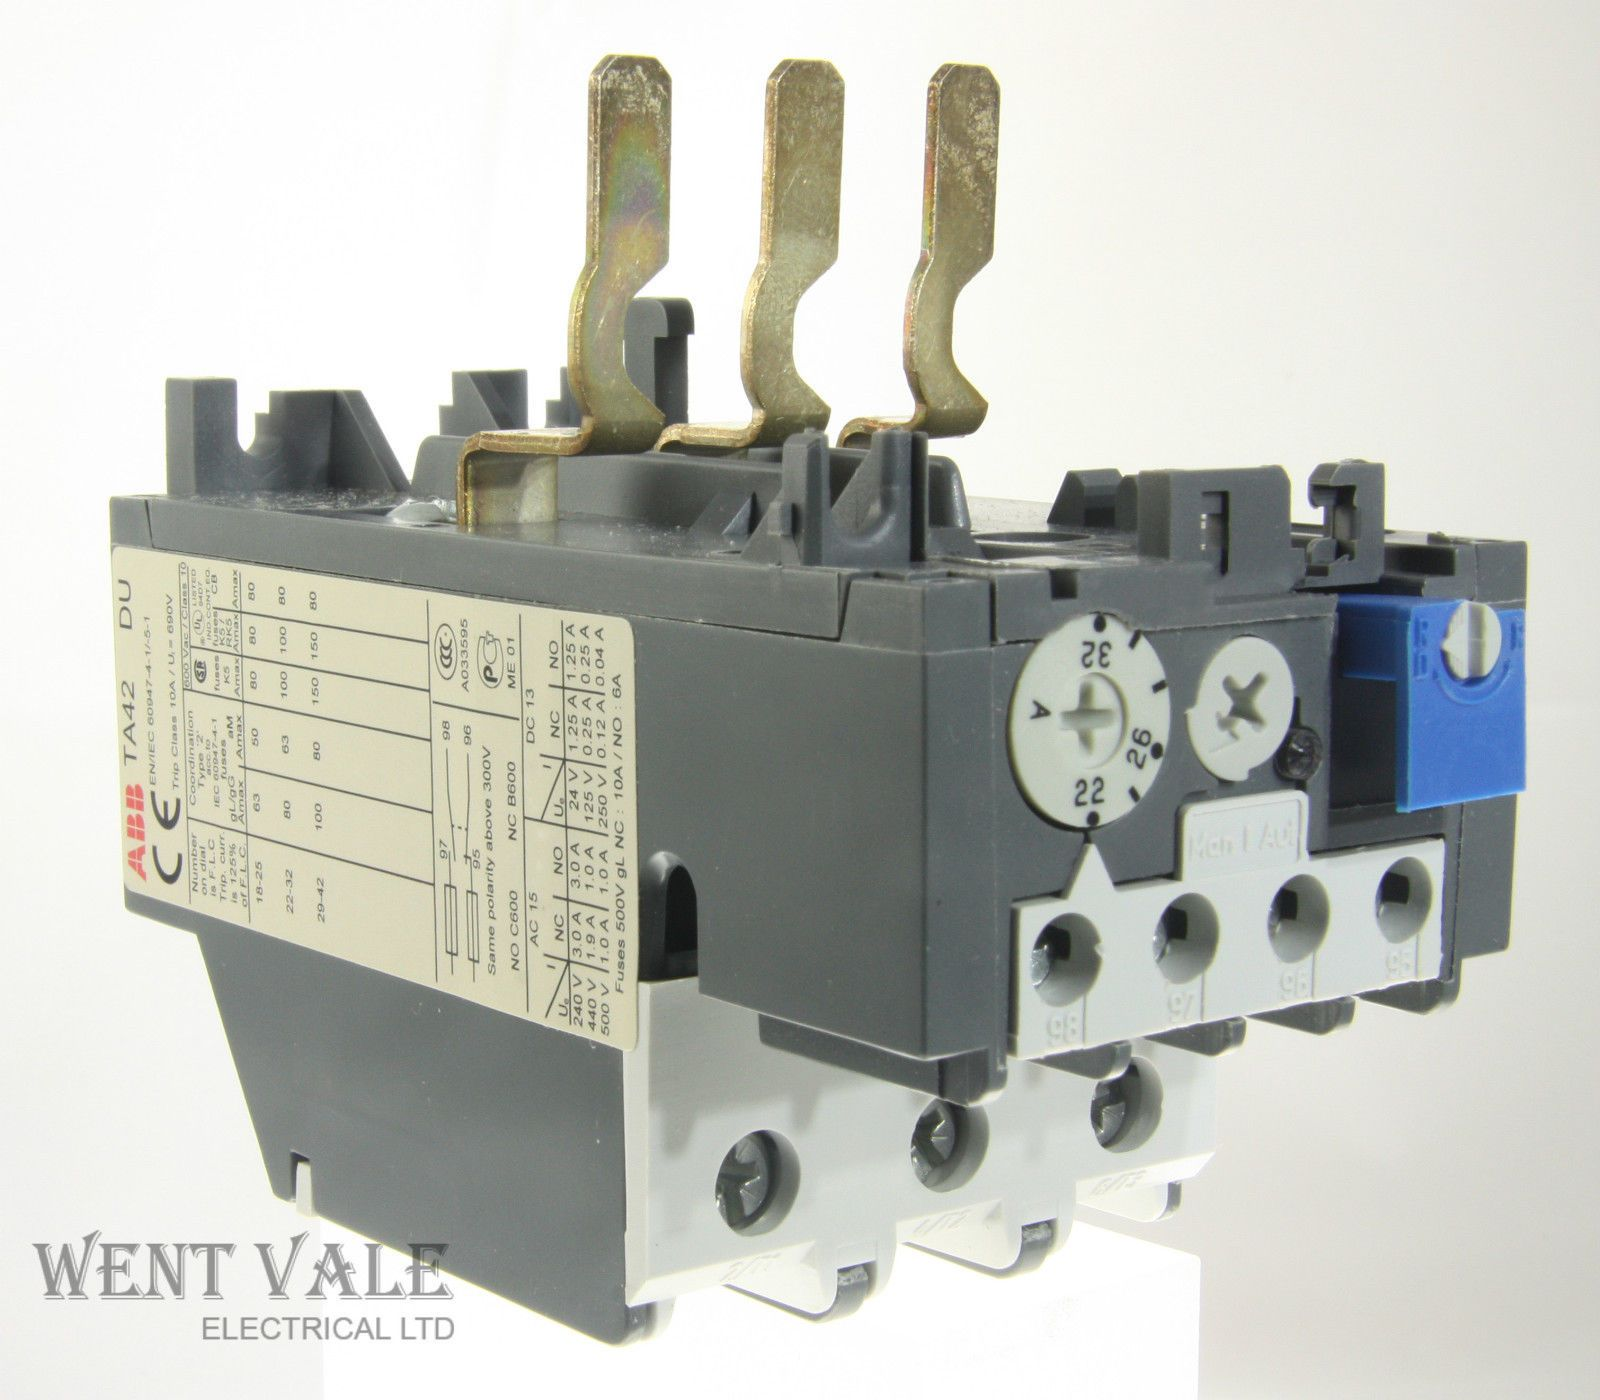 ABB TA42DU-32 - 32a Thermal Overload Relay Un-used